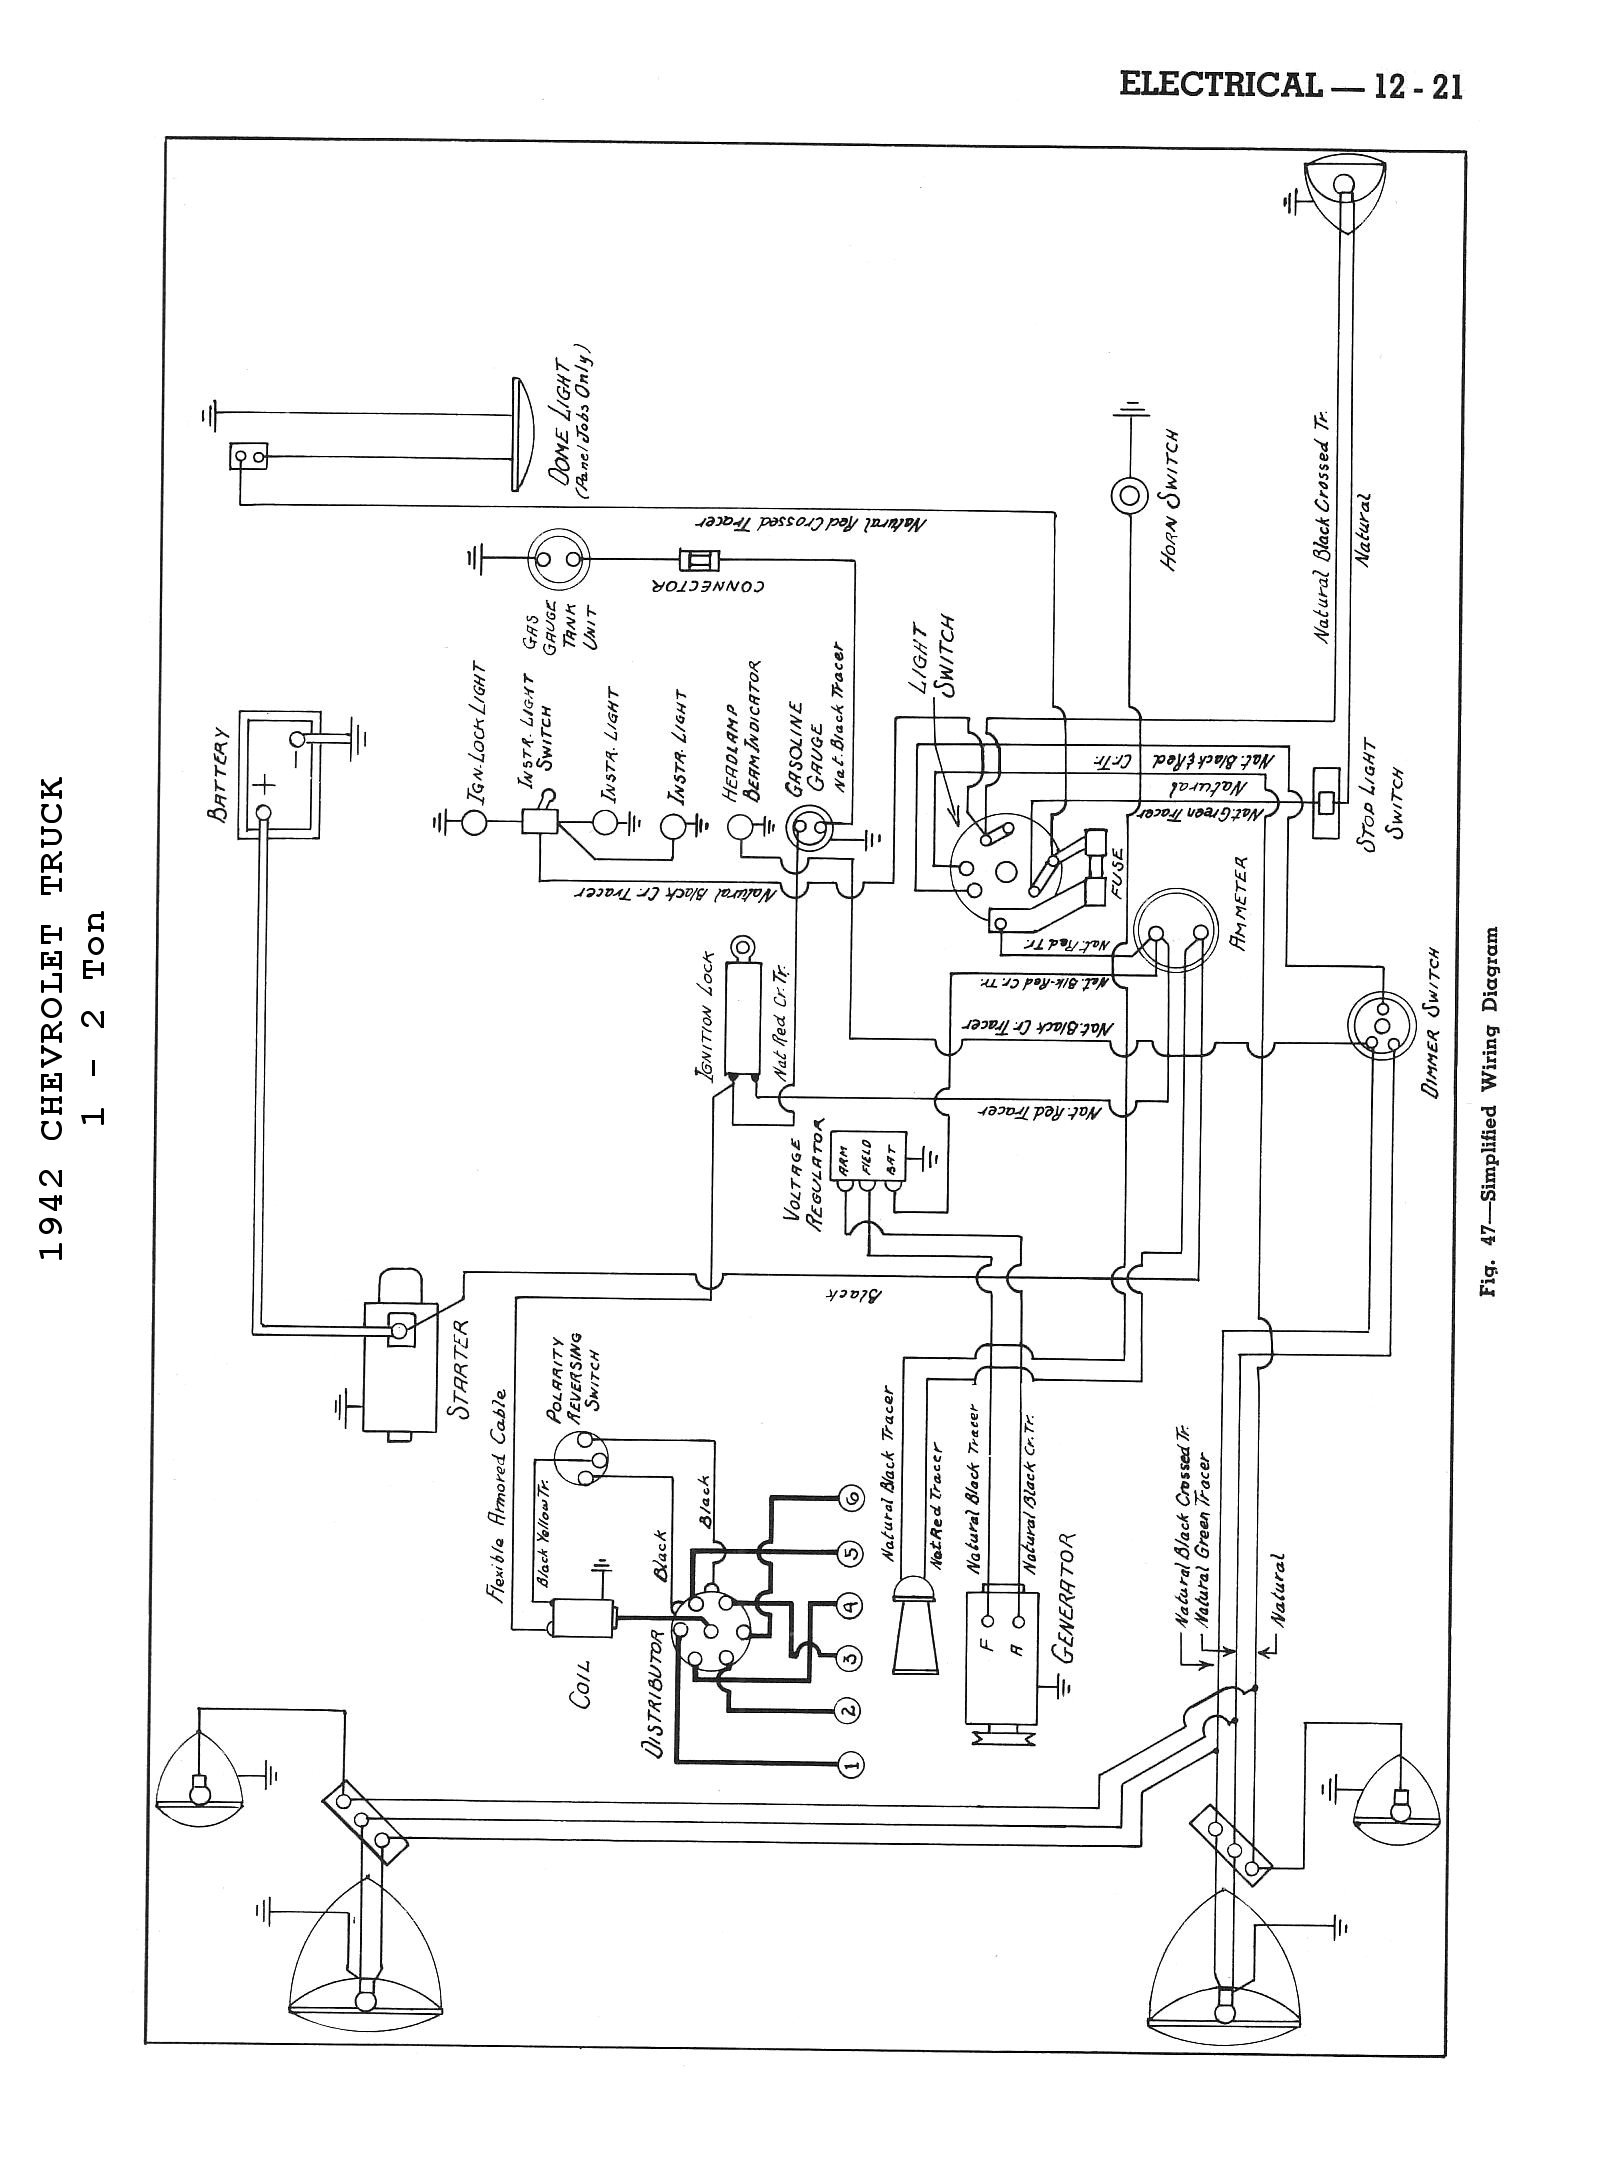 42cm4x2t1221 cm wiring diagram cm hoist wiring diagram \u2022 wiring diagrams j boston subsat 6 wiring diagram at gsmx.co